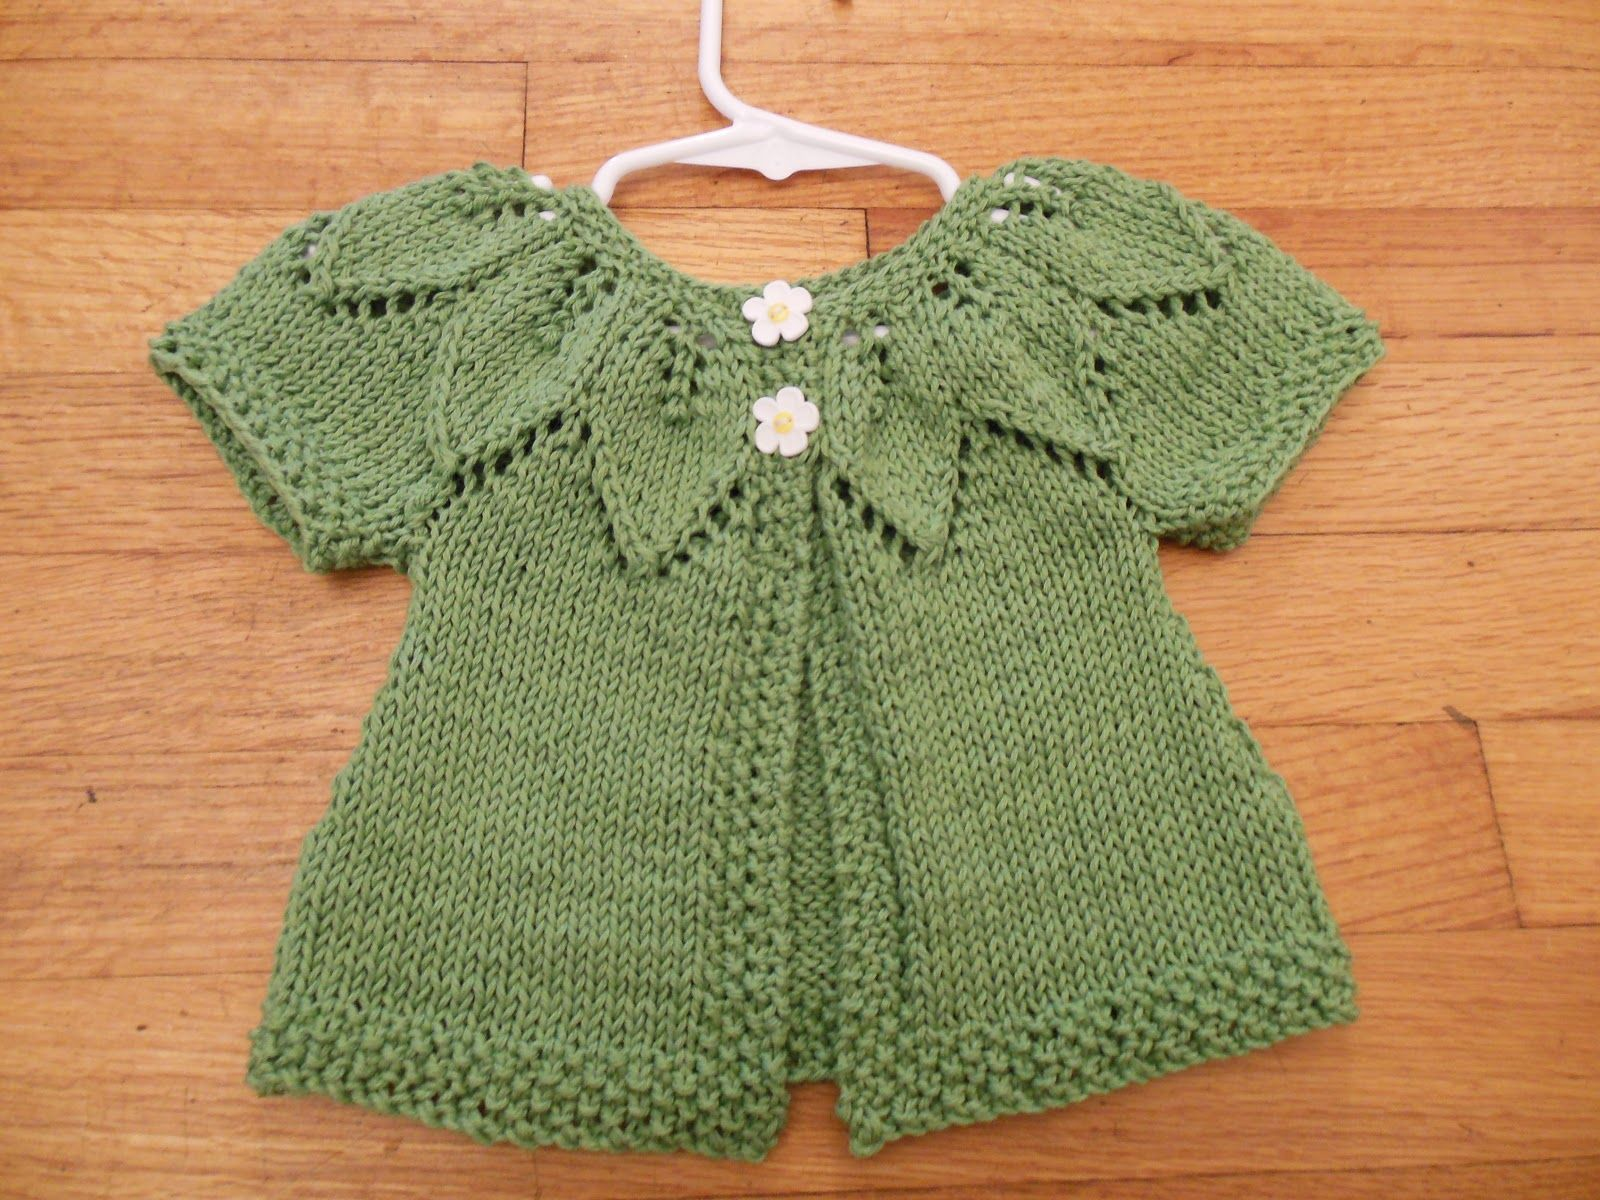 Knitted baby sweater this is such a cute little baby sweater knitted baby sweater this is such a cute little baby sweater bankloansurffo Choice Image